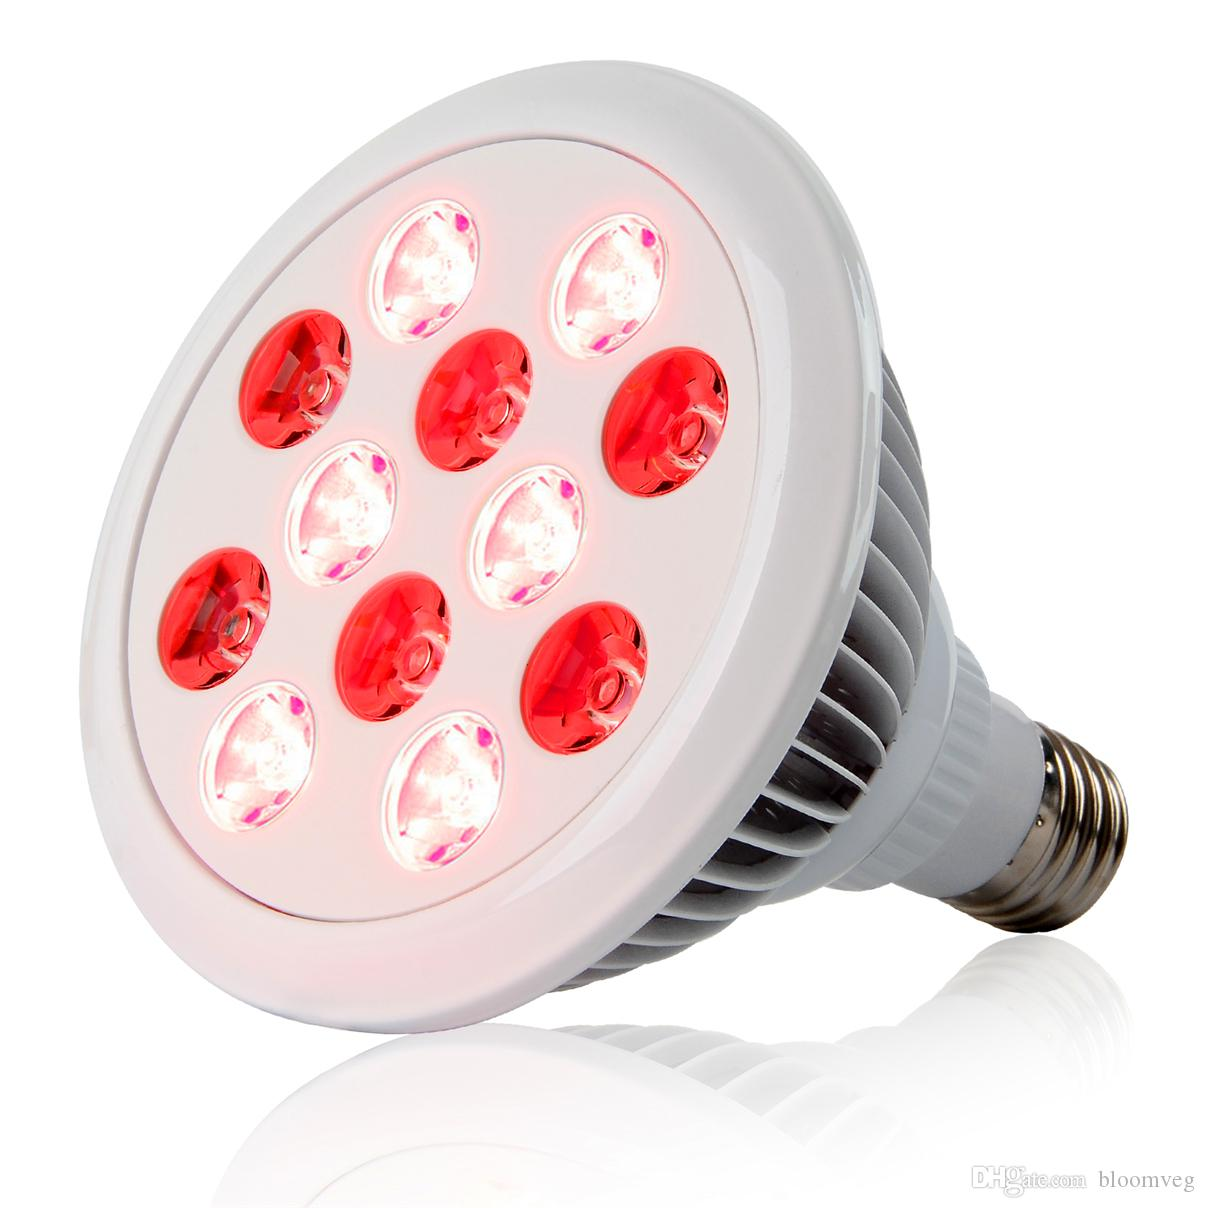 LED Bulbs E27 Arrival 24W red light therapy Skin Care face full body 630nm 670nm